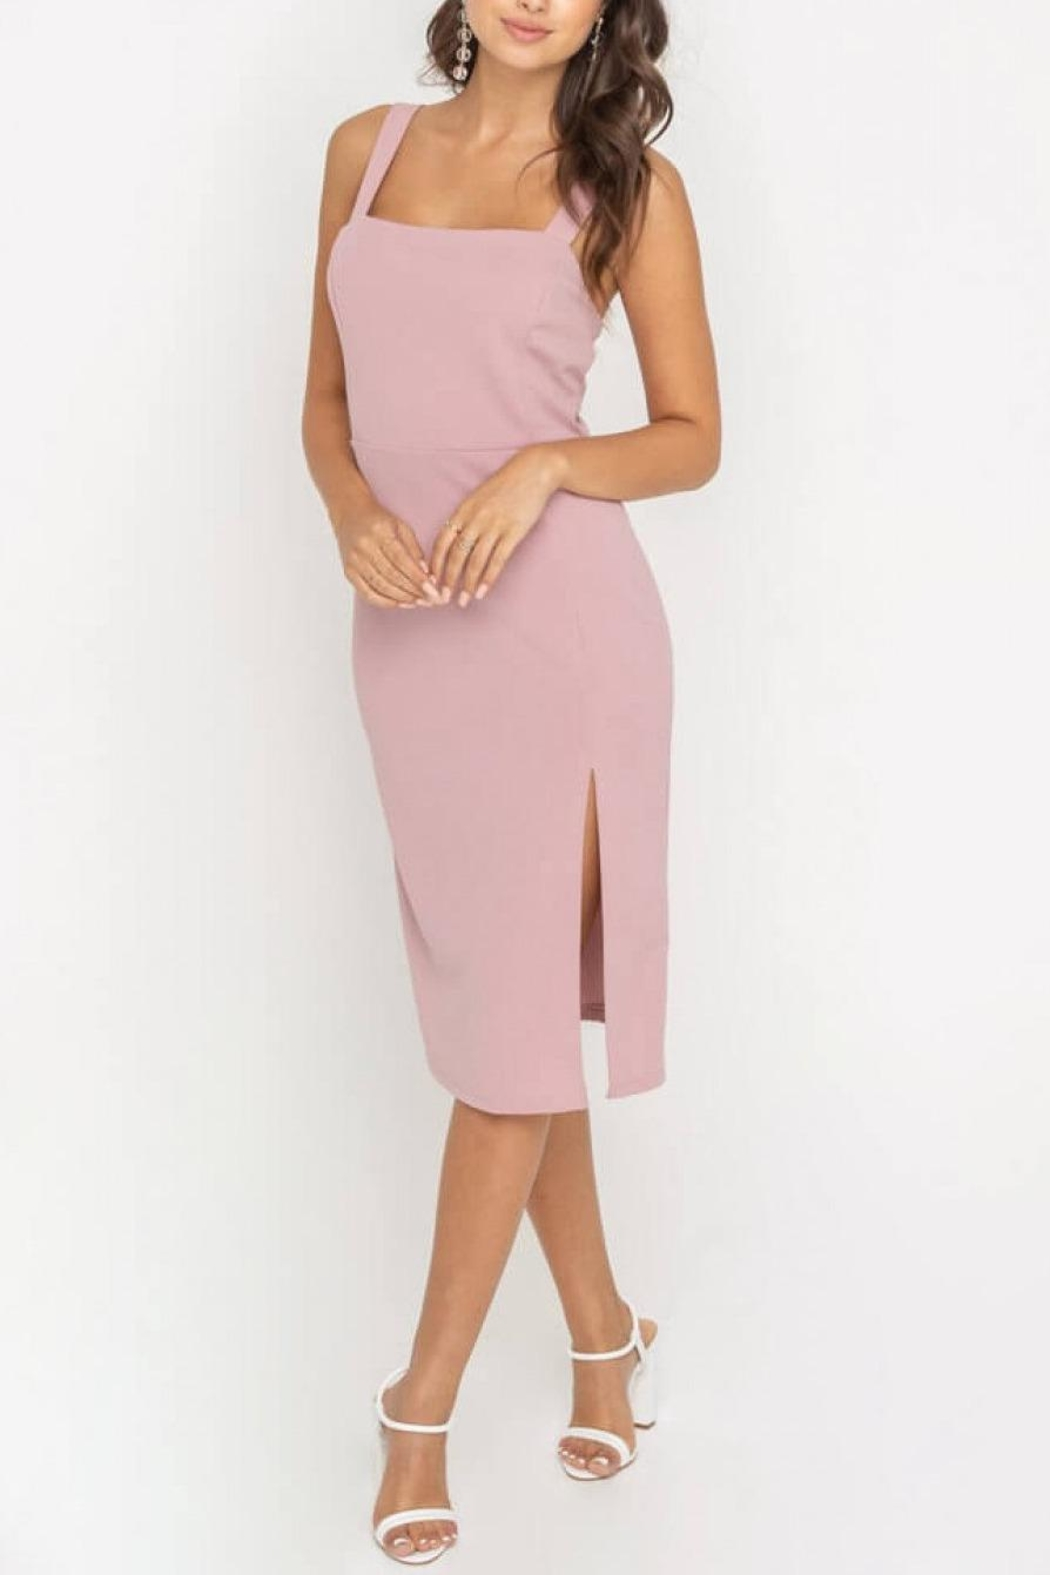 Lush Clothing  Side-Slit Fitted Cocktail-Dress - Main Image